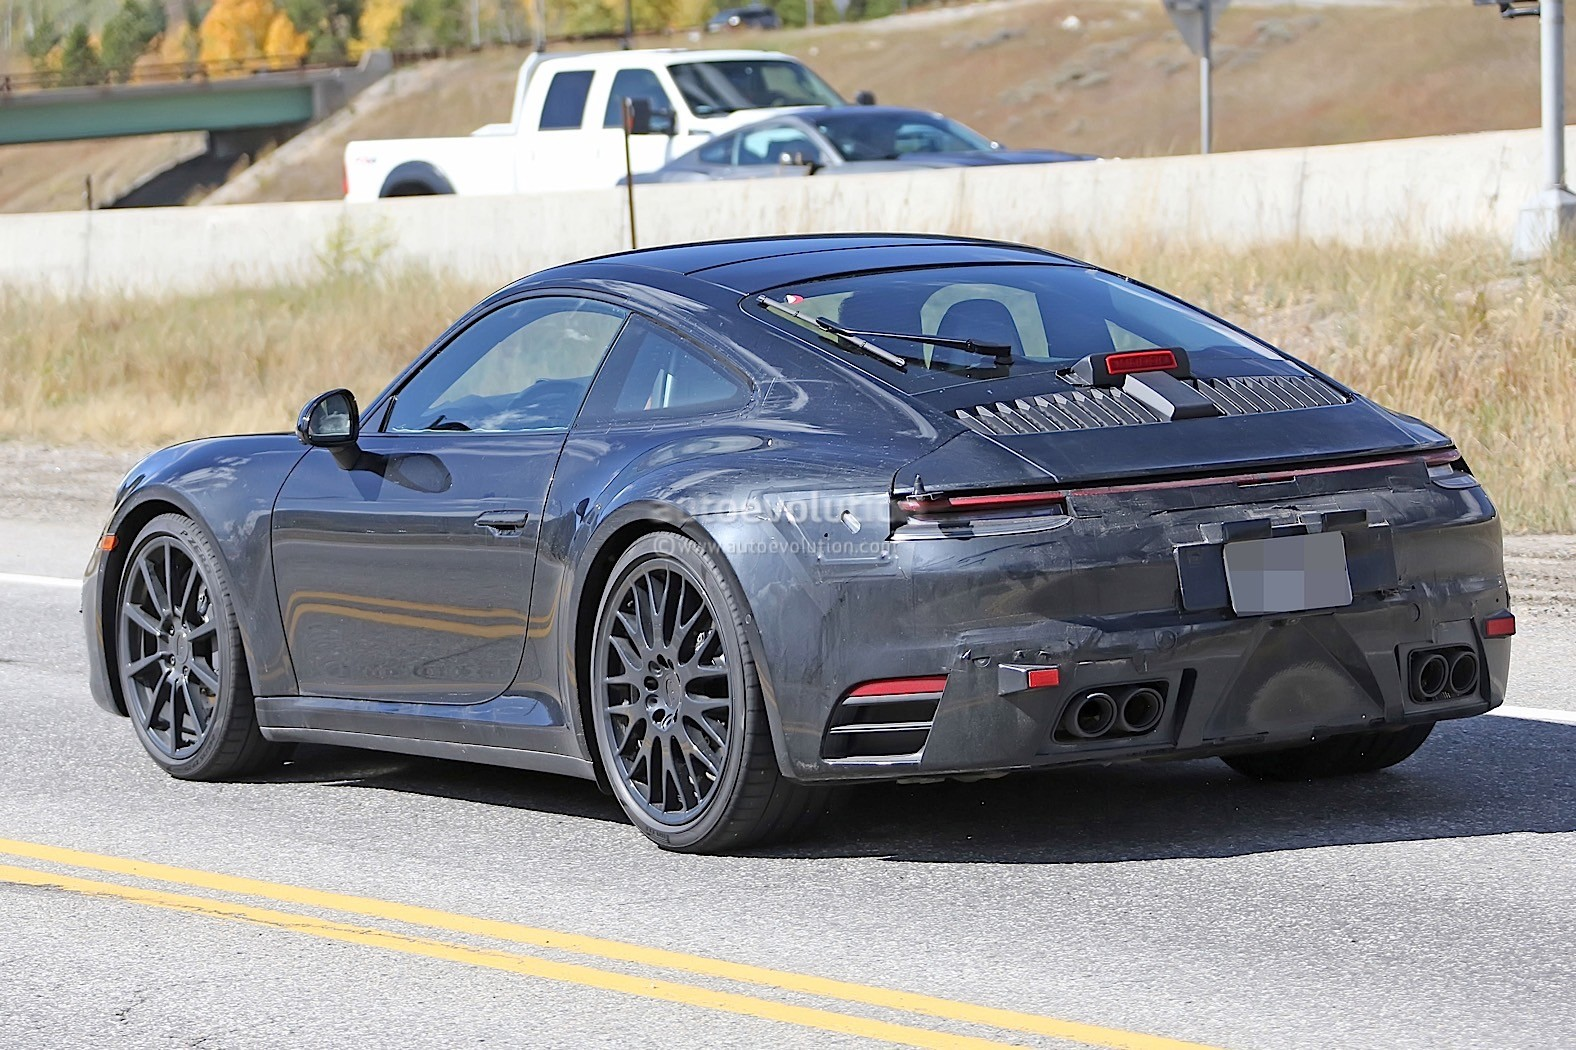 2020 Porsche 911 Carrera Cabriolet Spotted At German Gas Station